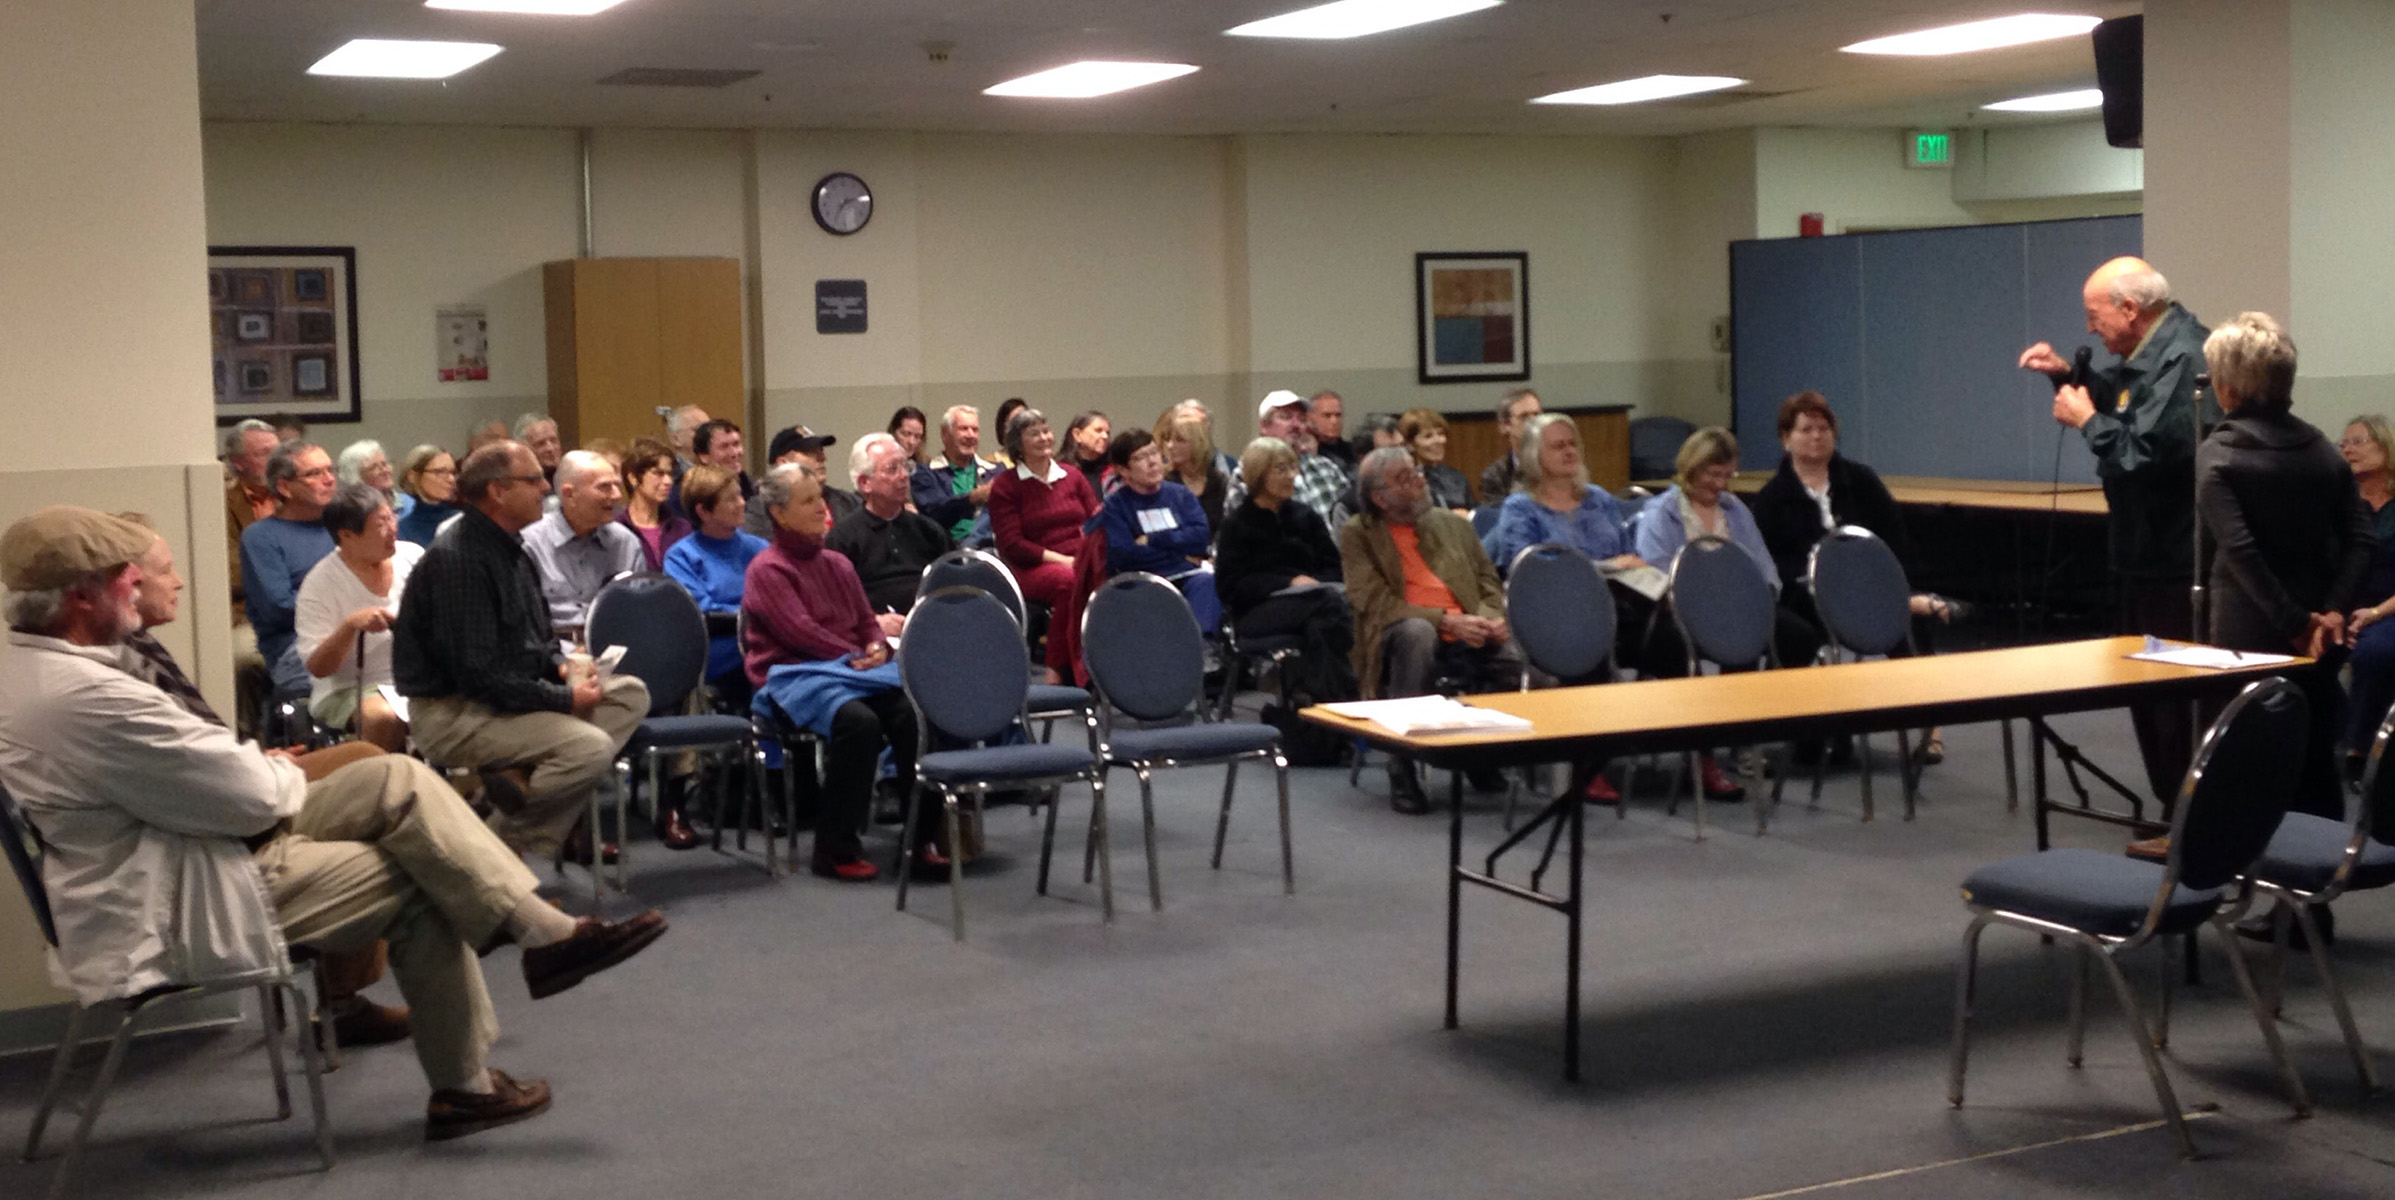 Doug Siden addresses a crowded room at the Friends of Crown Beach meeting.